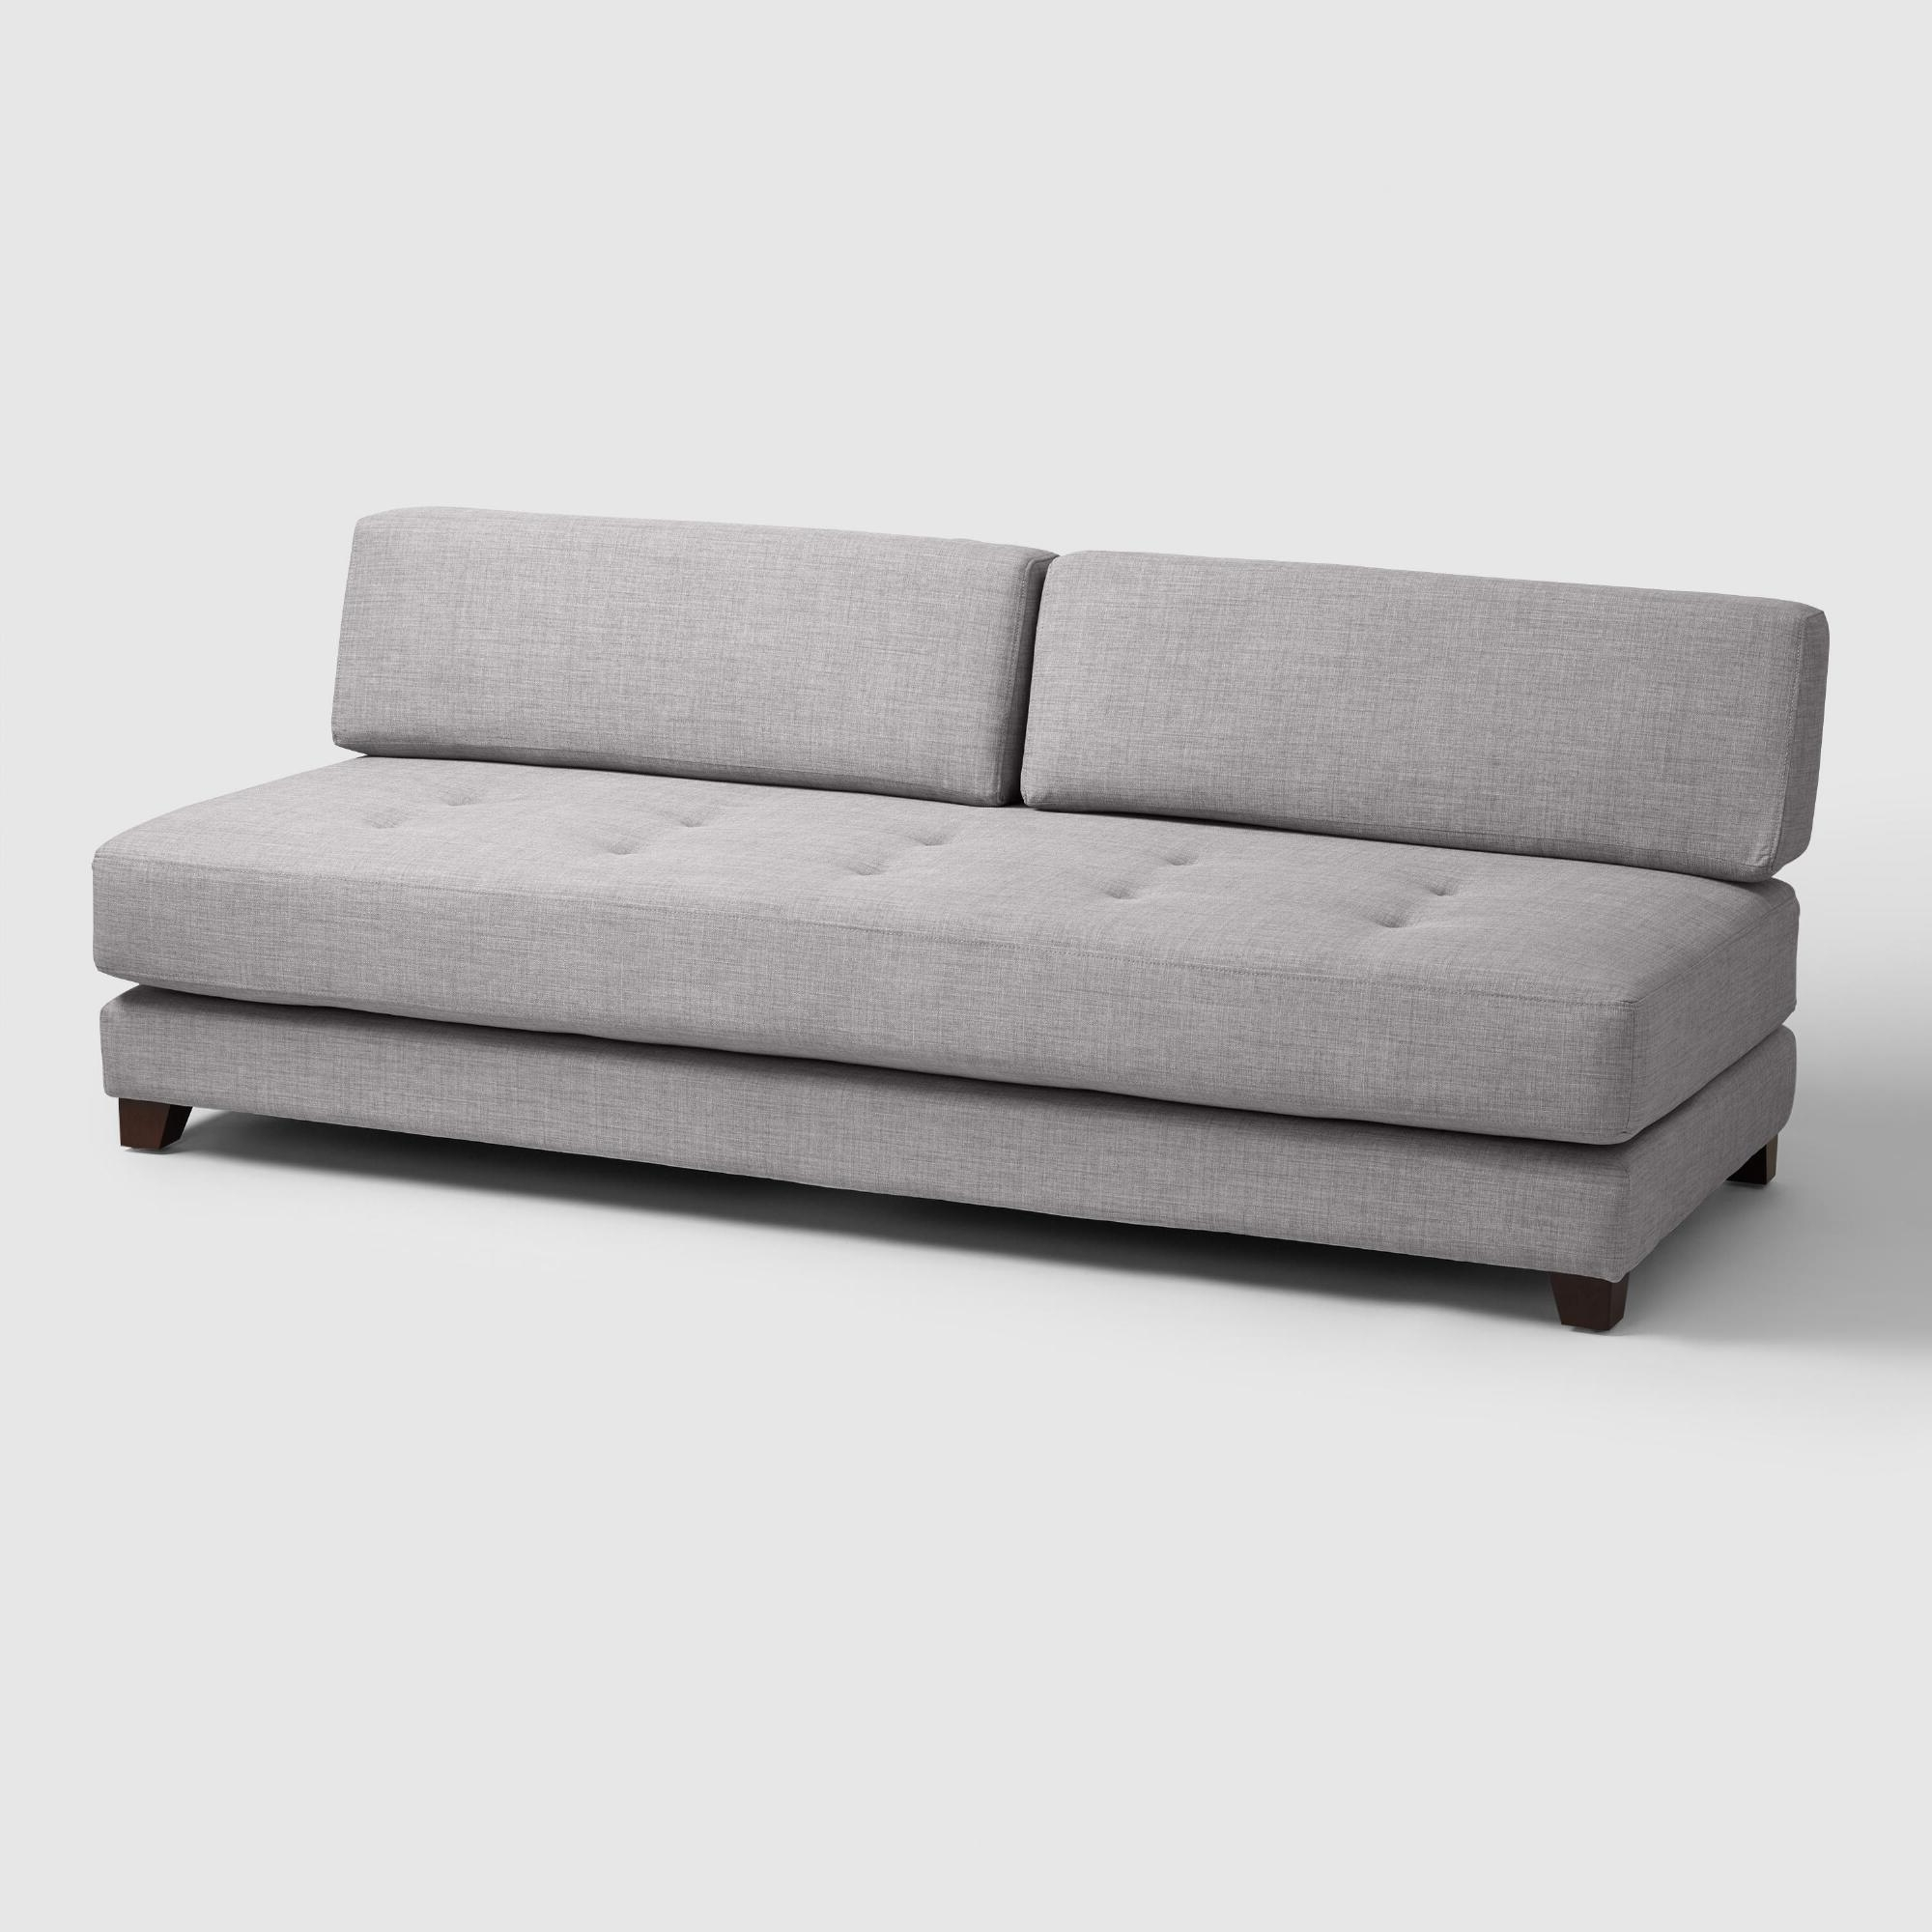 Best And Newest Chaise Lounge Daybeds For Chaise Lounge Daybed Best Daybeds Top Modern Day Bed Ideas 1 My (View 2 of 15)